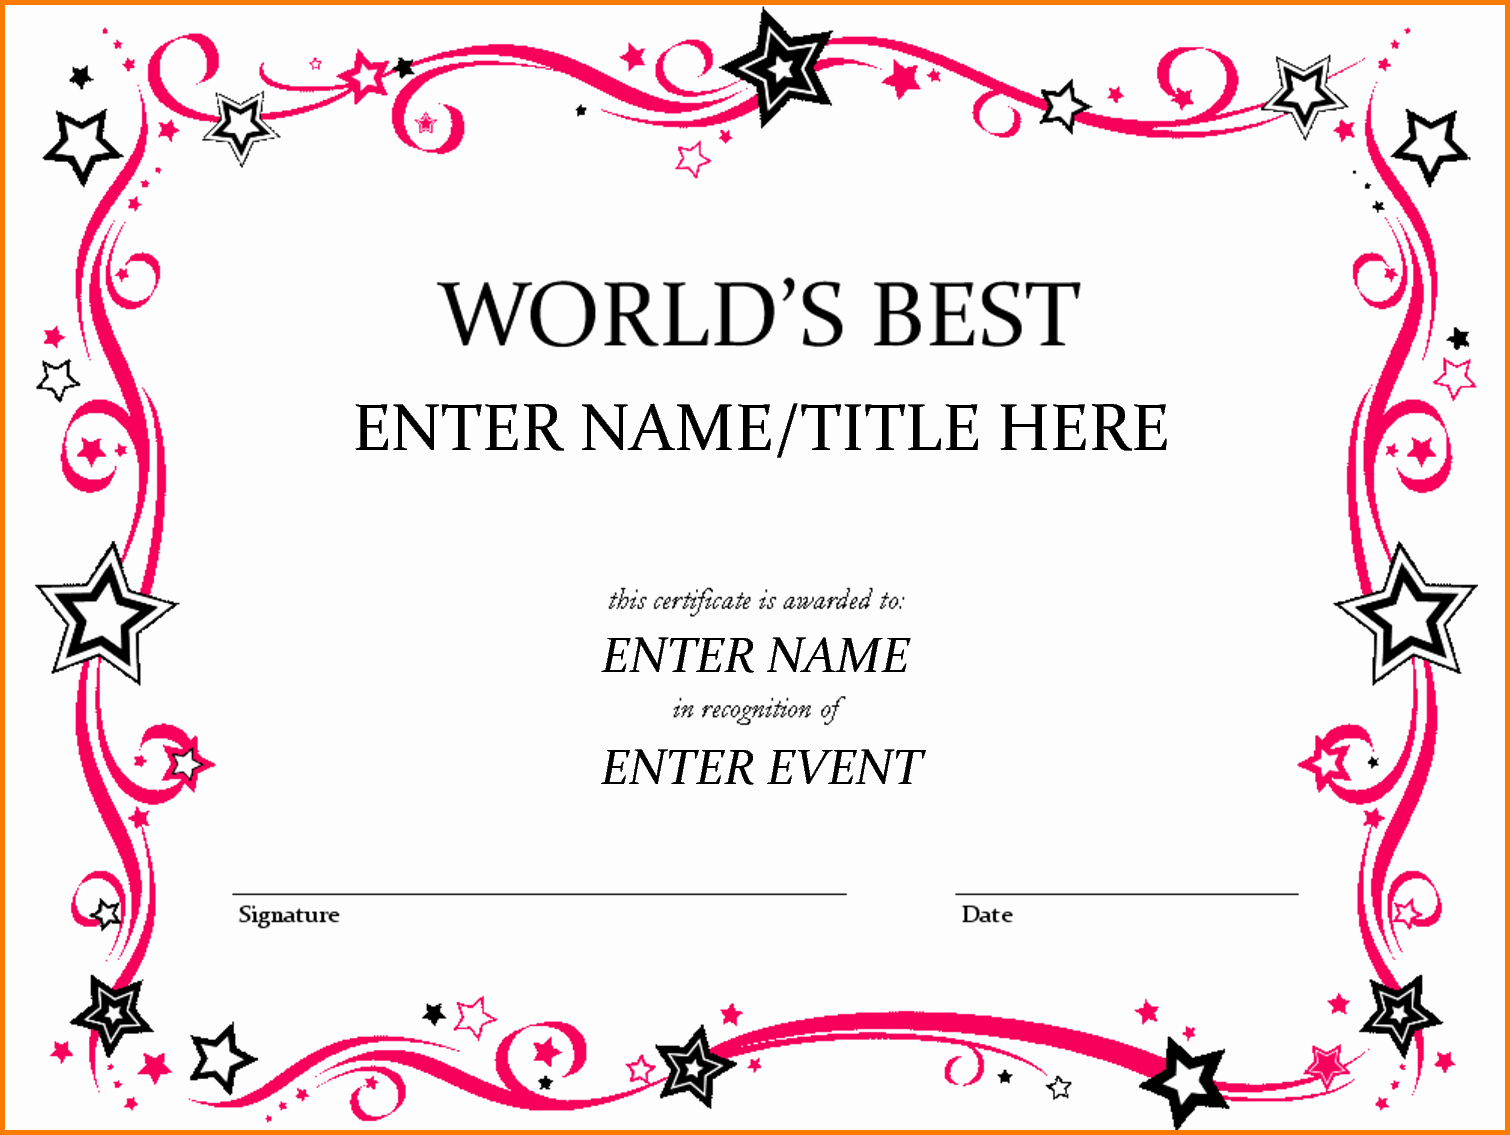 1st Place Certificate Template Word Best Of Award Template Word